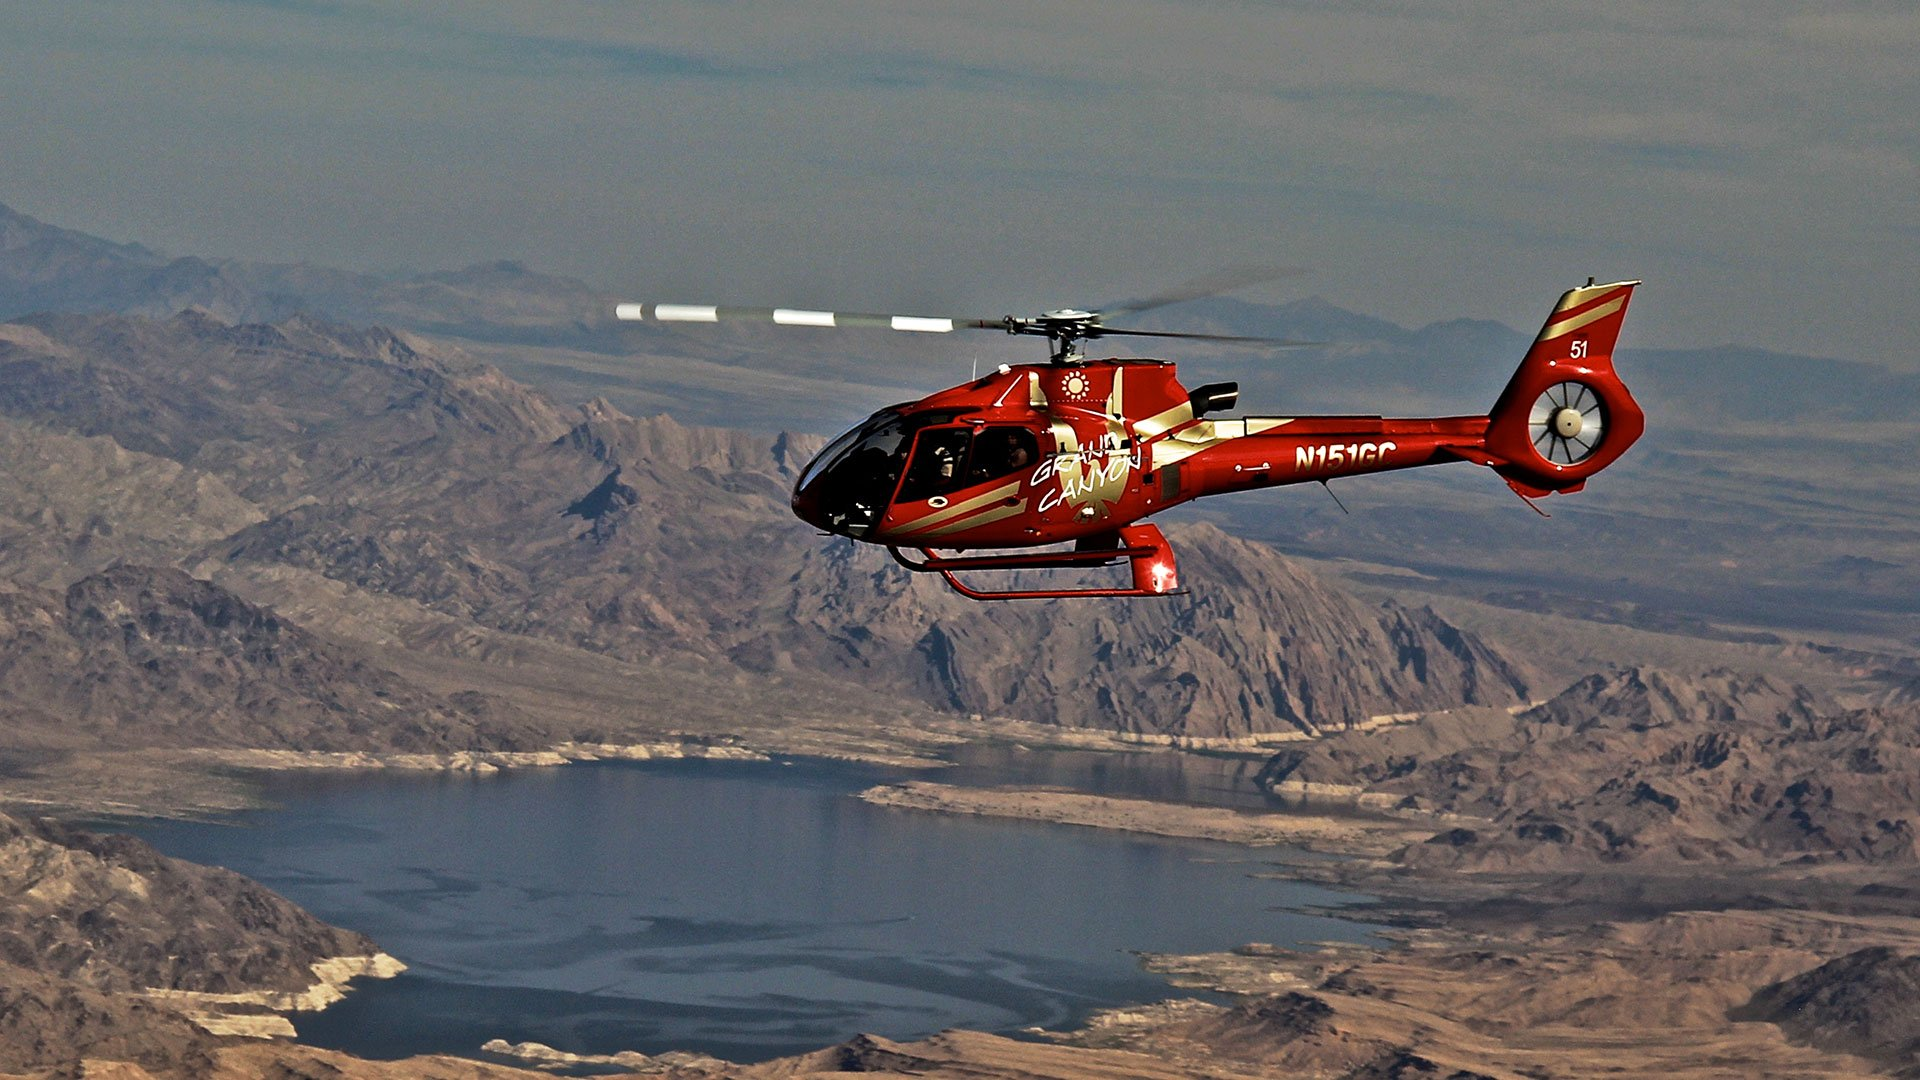 Red EC-130 helicopter flying over Lake Mead